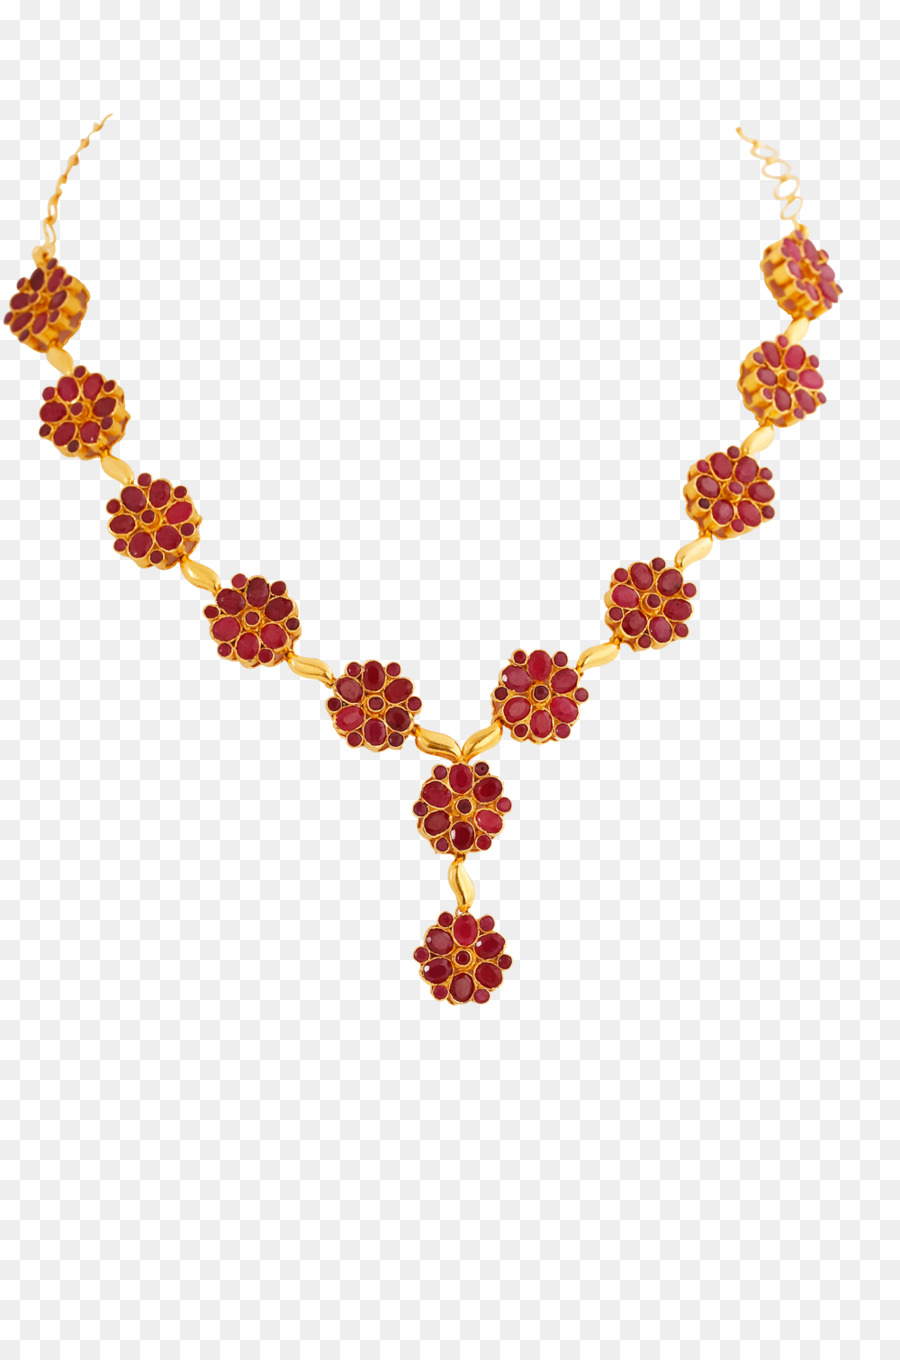 Jewellery Pearl Necklace Earring Bead Jewelry Display Png Download